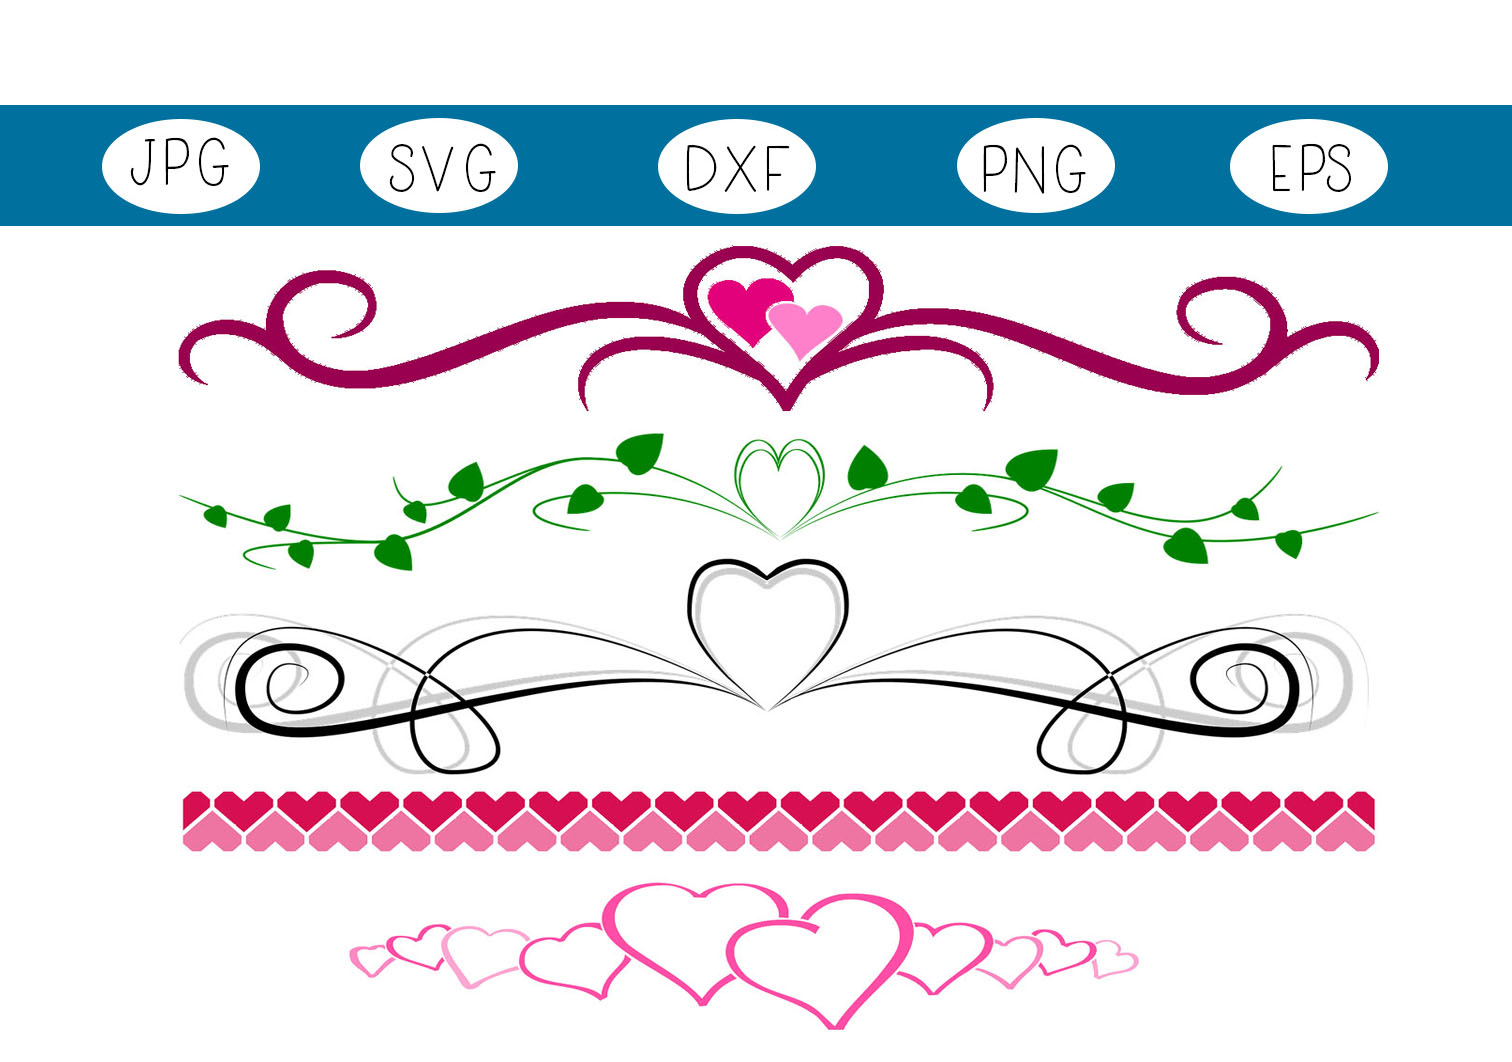 Download Free 634073 Graficos for Cricut Explore, Silhouette and other cutting machines.